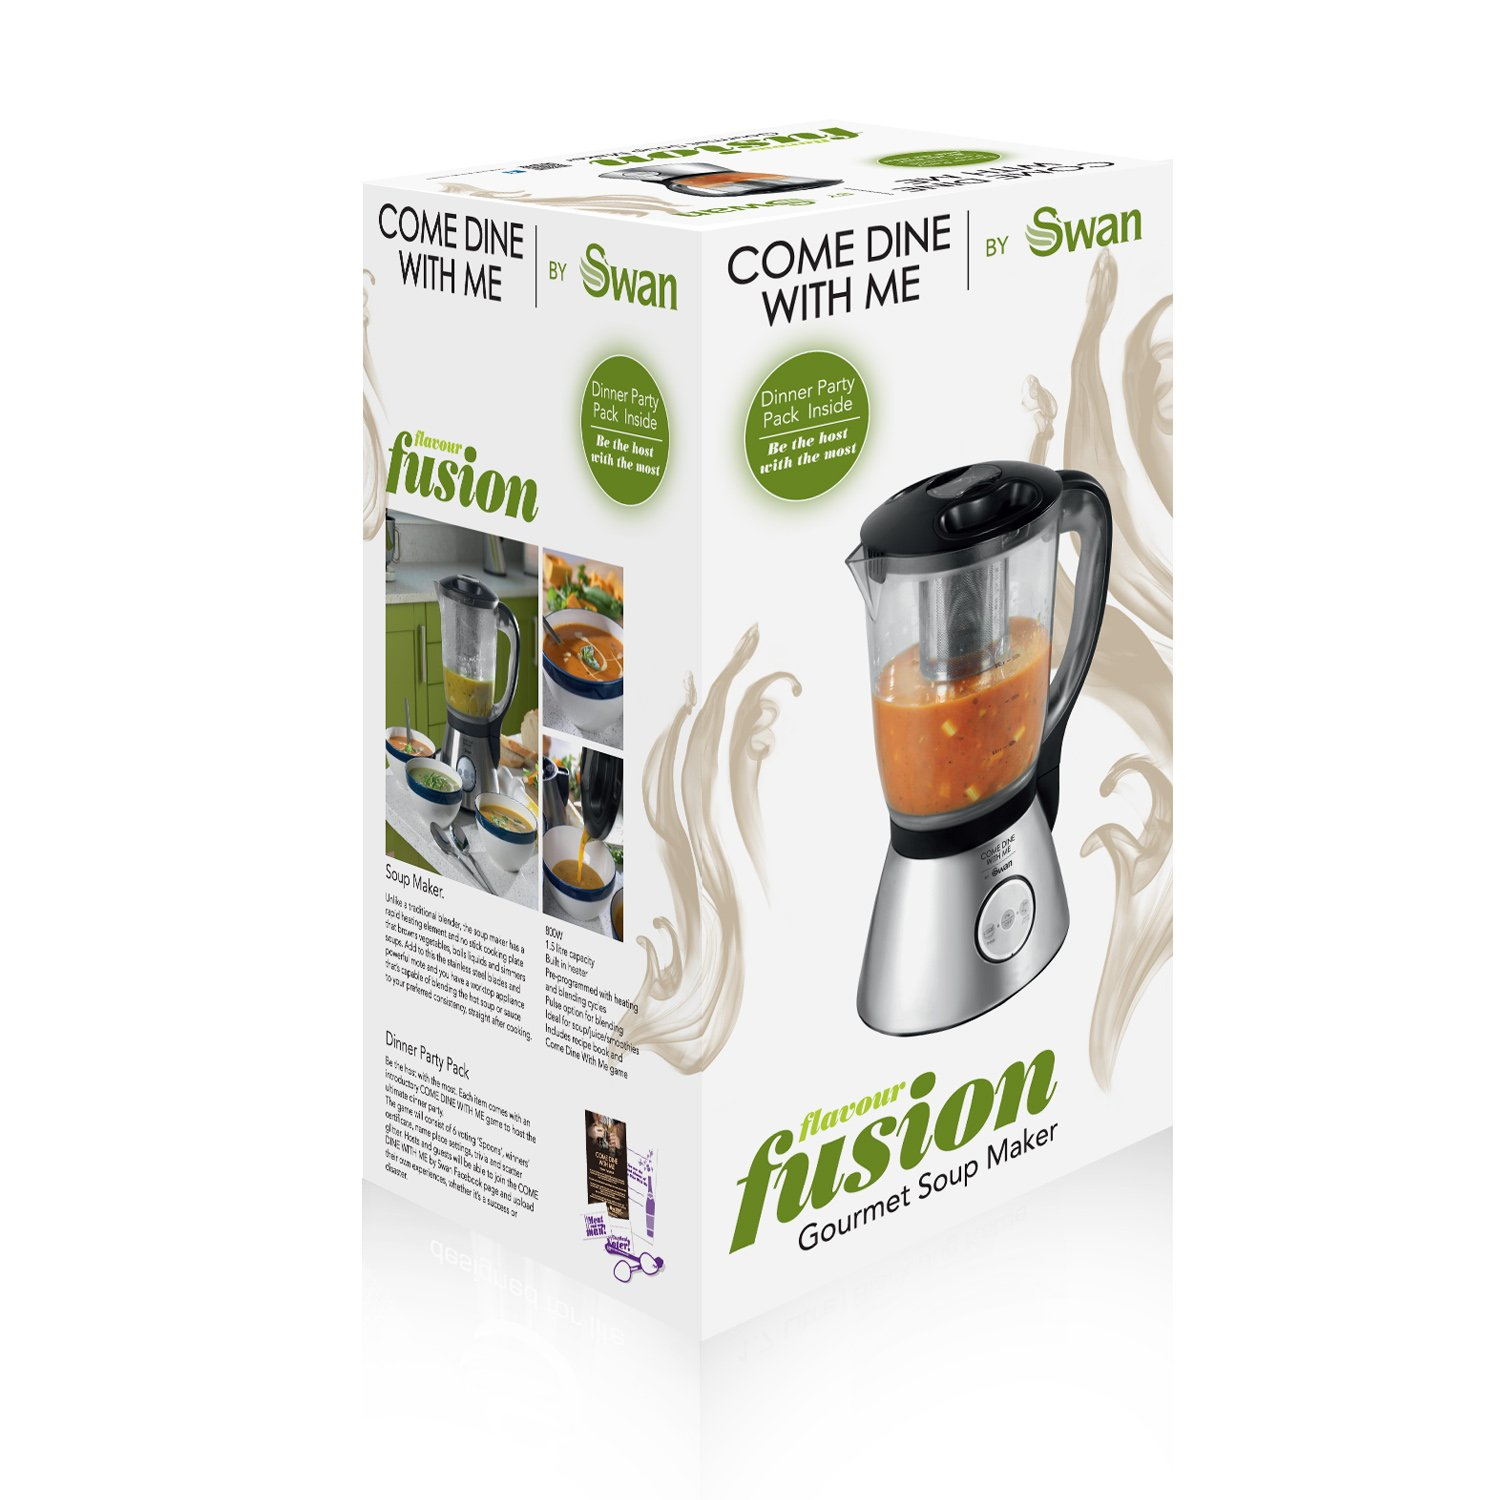 Amazon.com : Swan Come Dine with Me Gourmet Soup Maker : Grocery ...